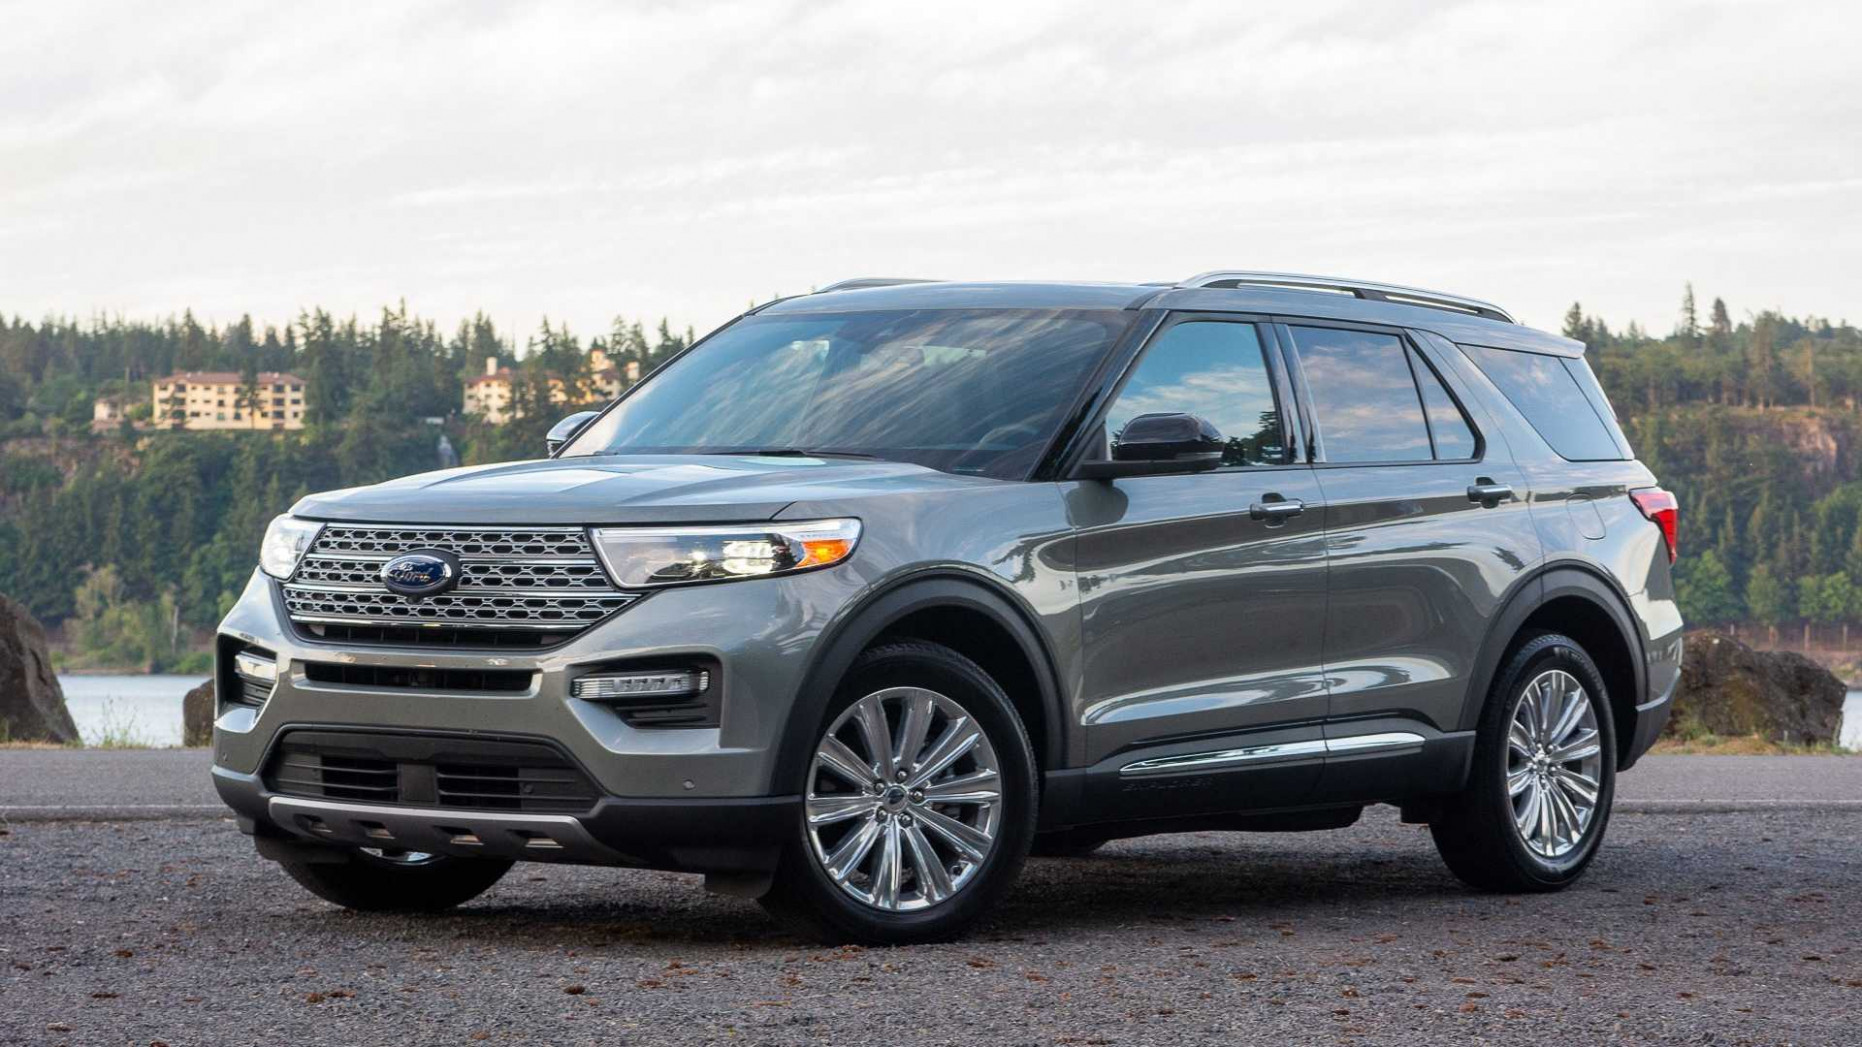 6 Ford Explorer Now Offered With Major Discounts Over $6,6